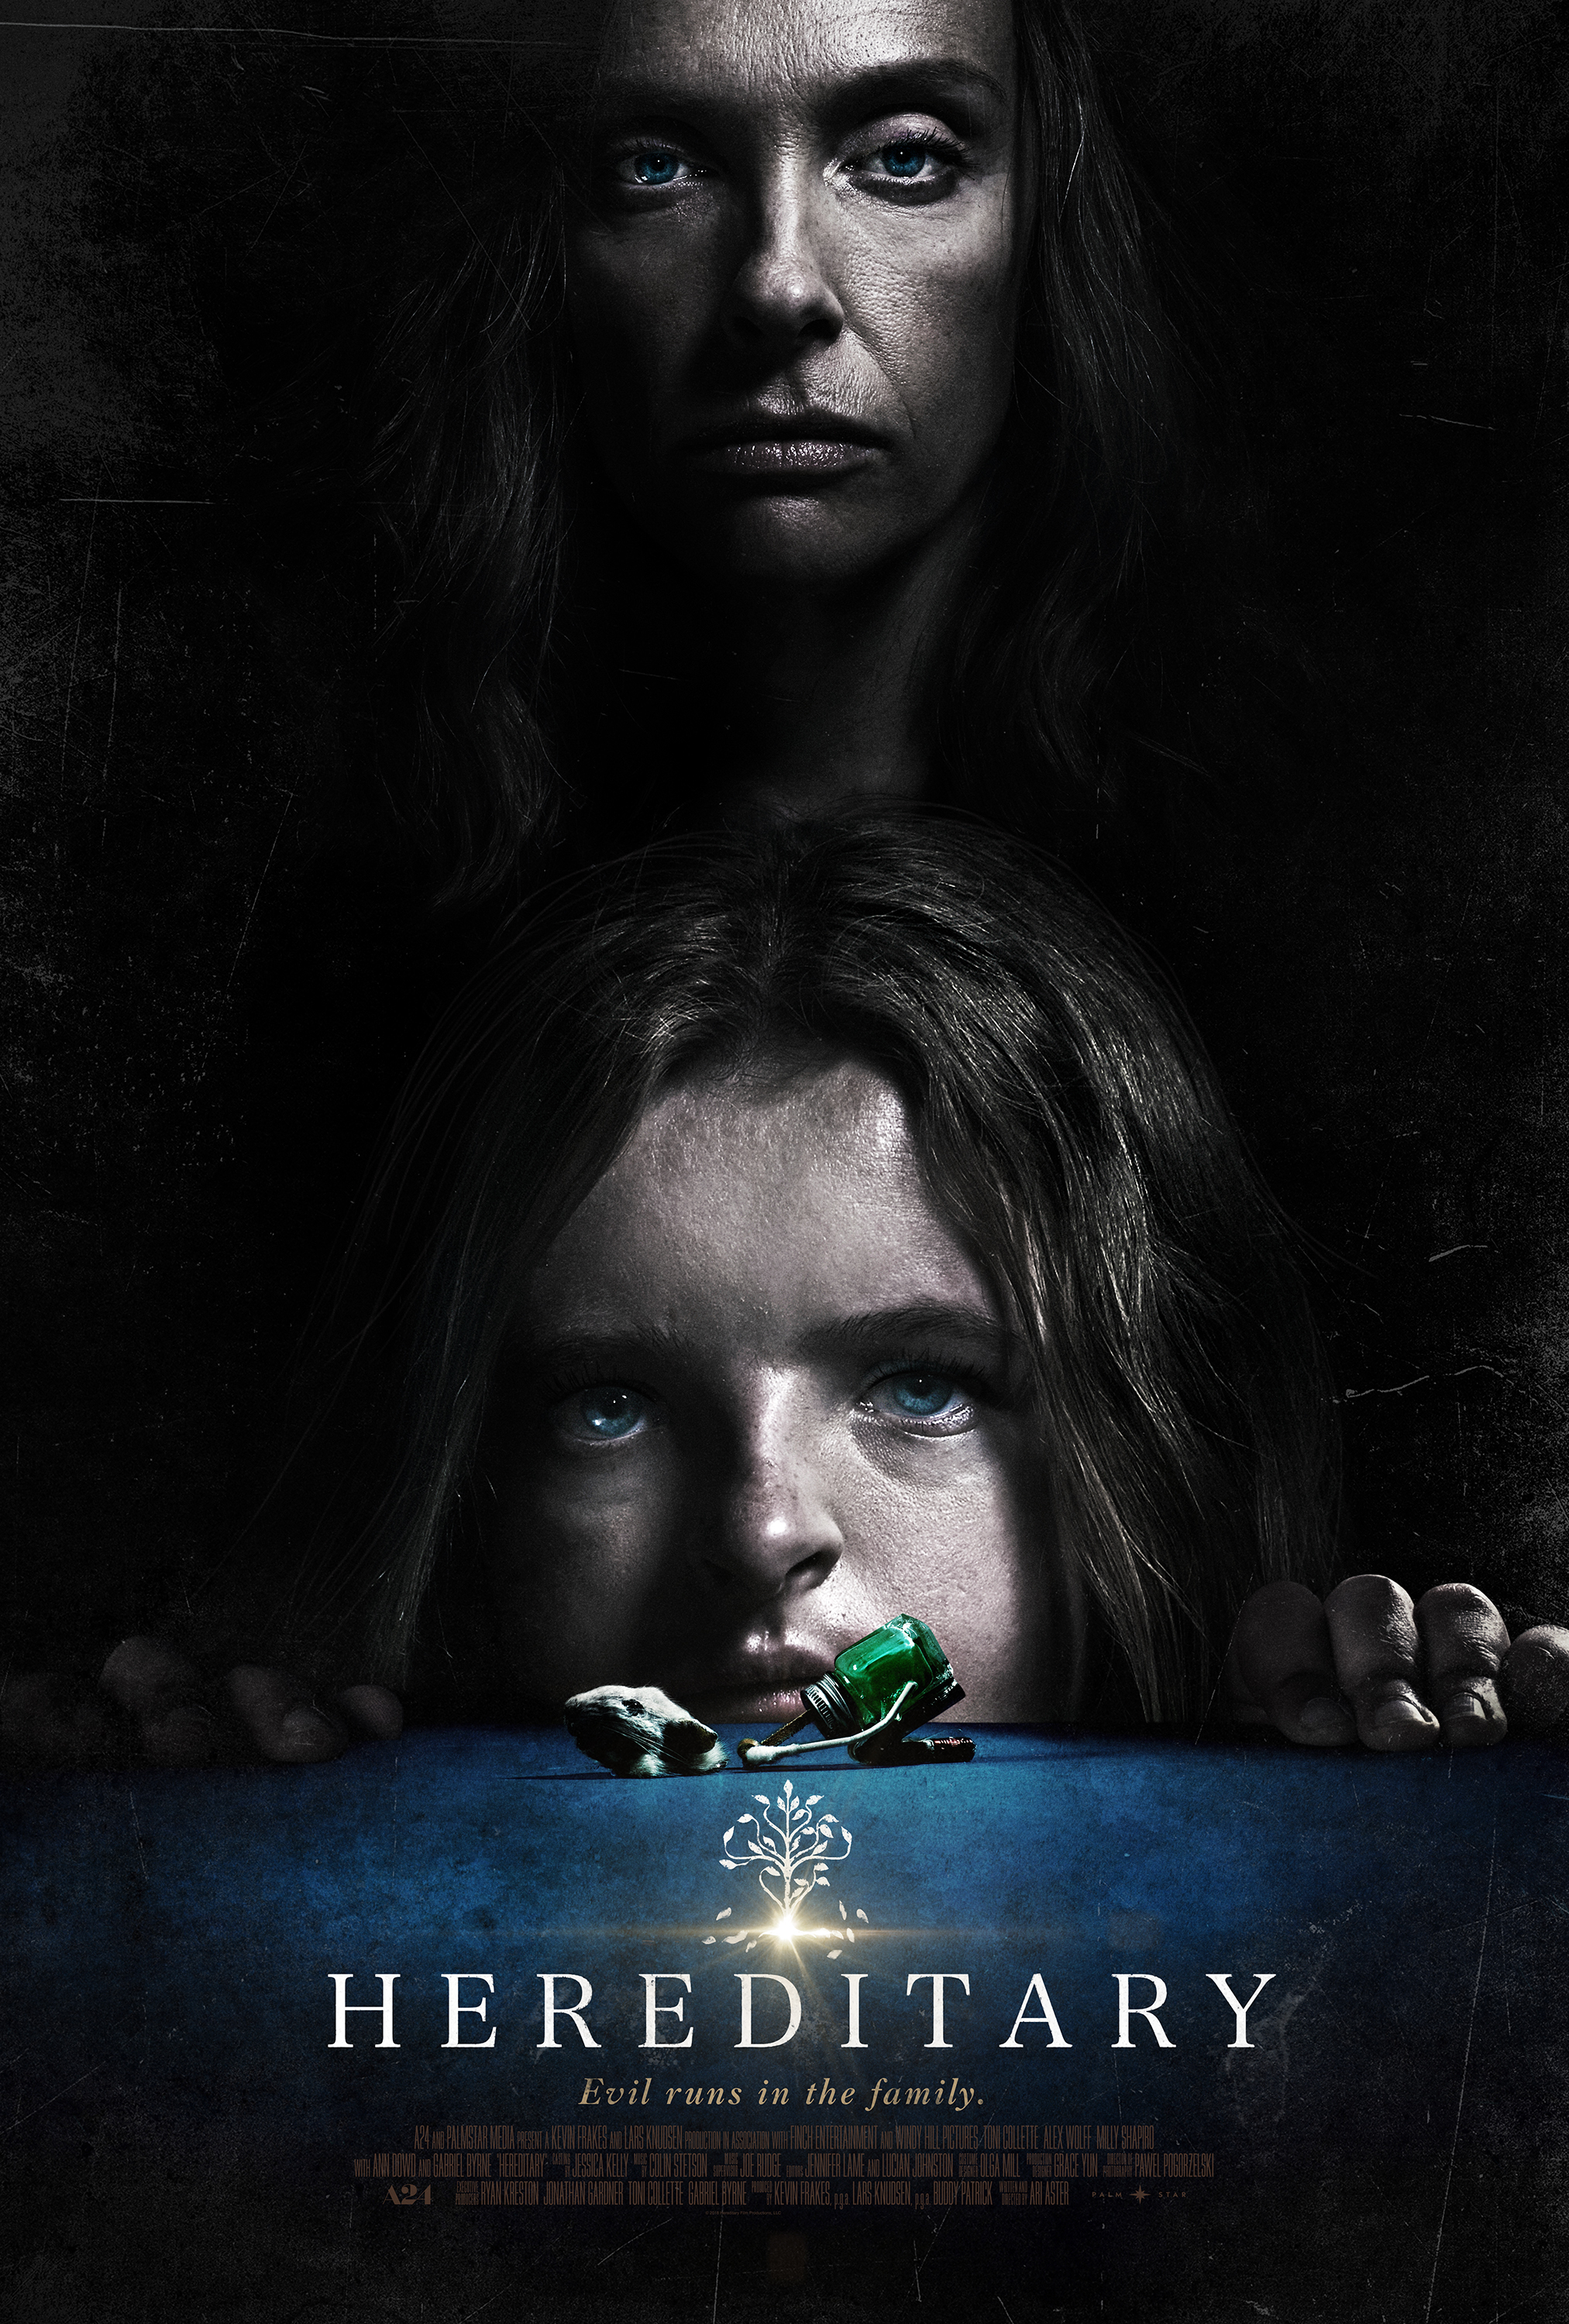 Image result for hereditaryy movie poster imdb""